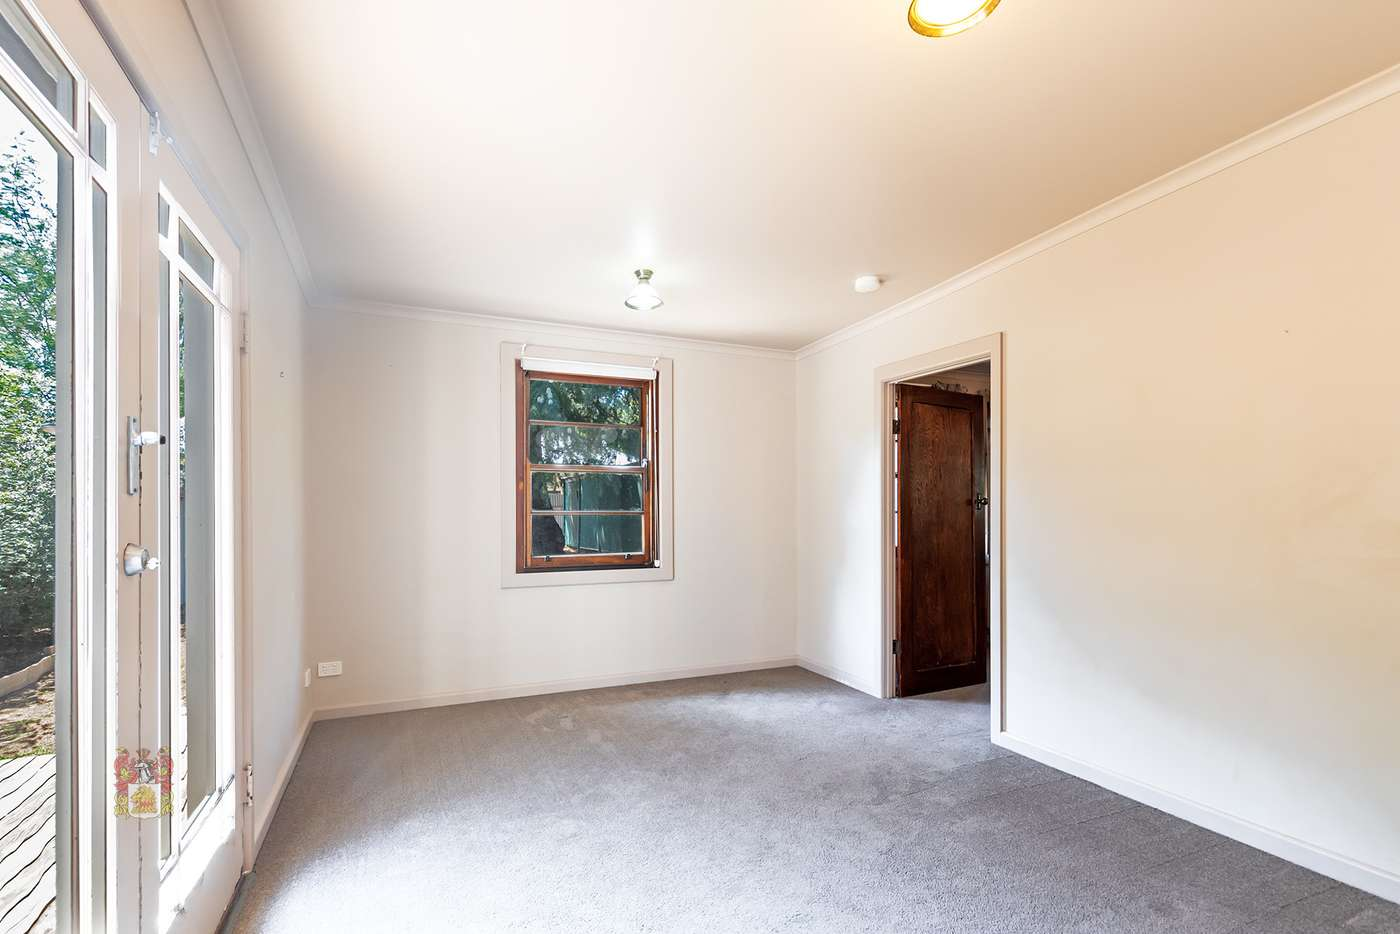 Sixth view of Homely house listing, 3 Abeckett Street, Yea VIC 3717